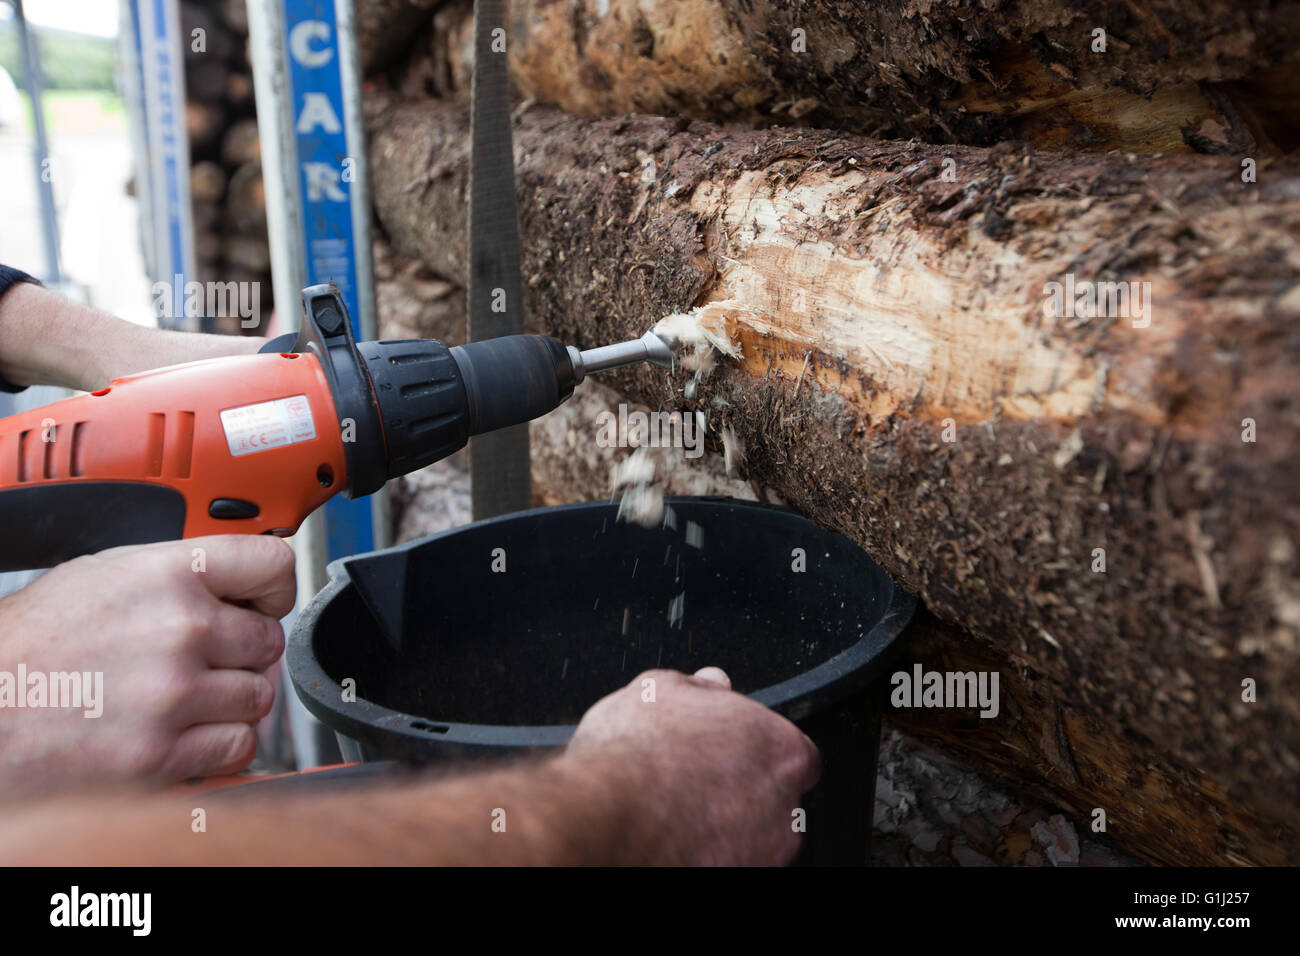 Western Wood Energy Plant at Port Talbot, Wales - taking samples of incoming timber to check hunidity levels. - Stock Image